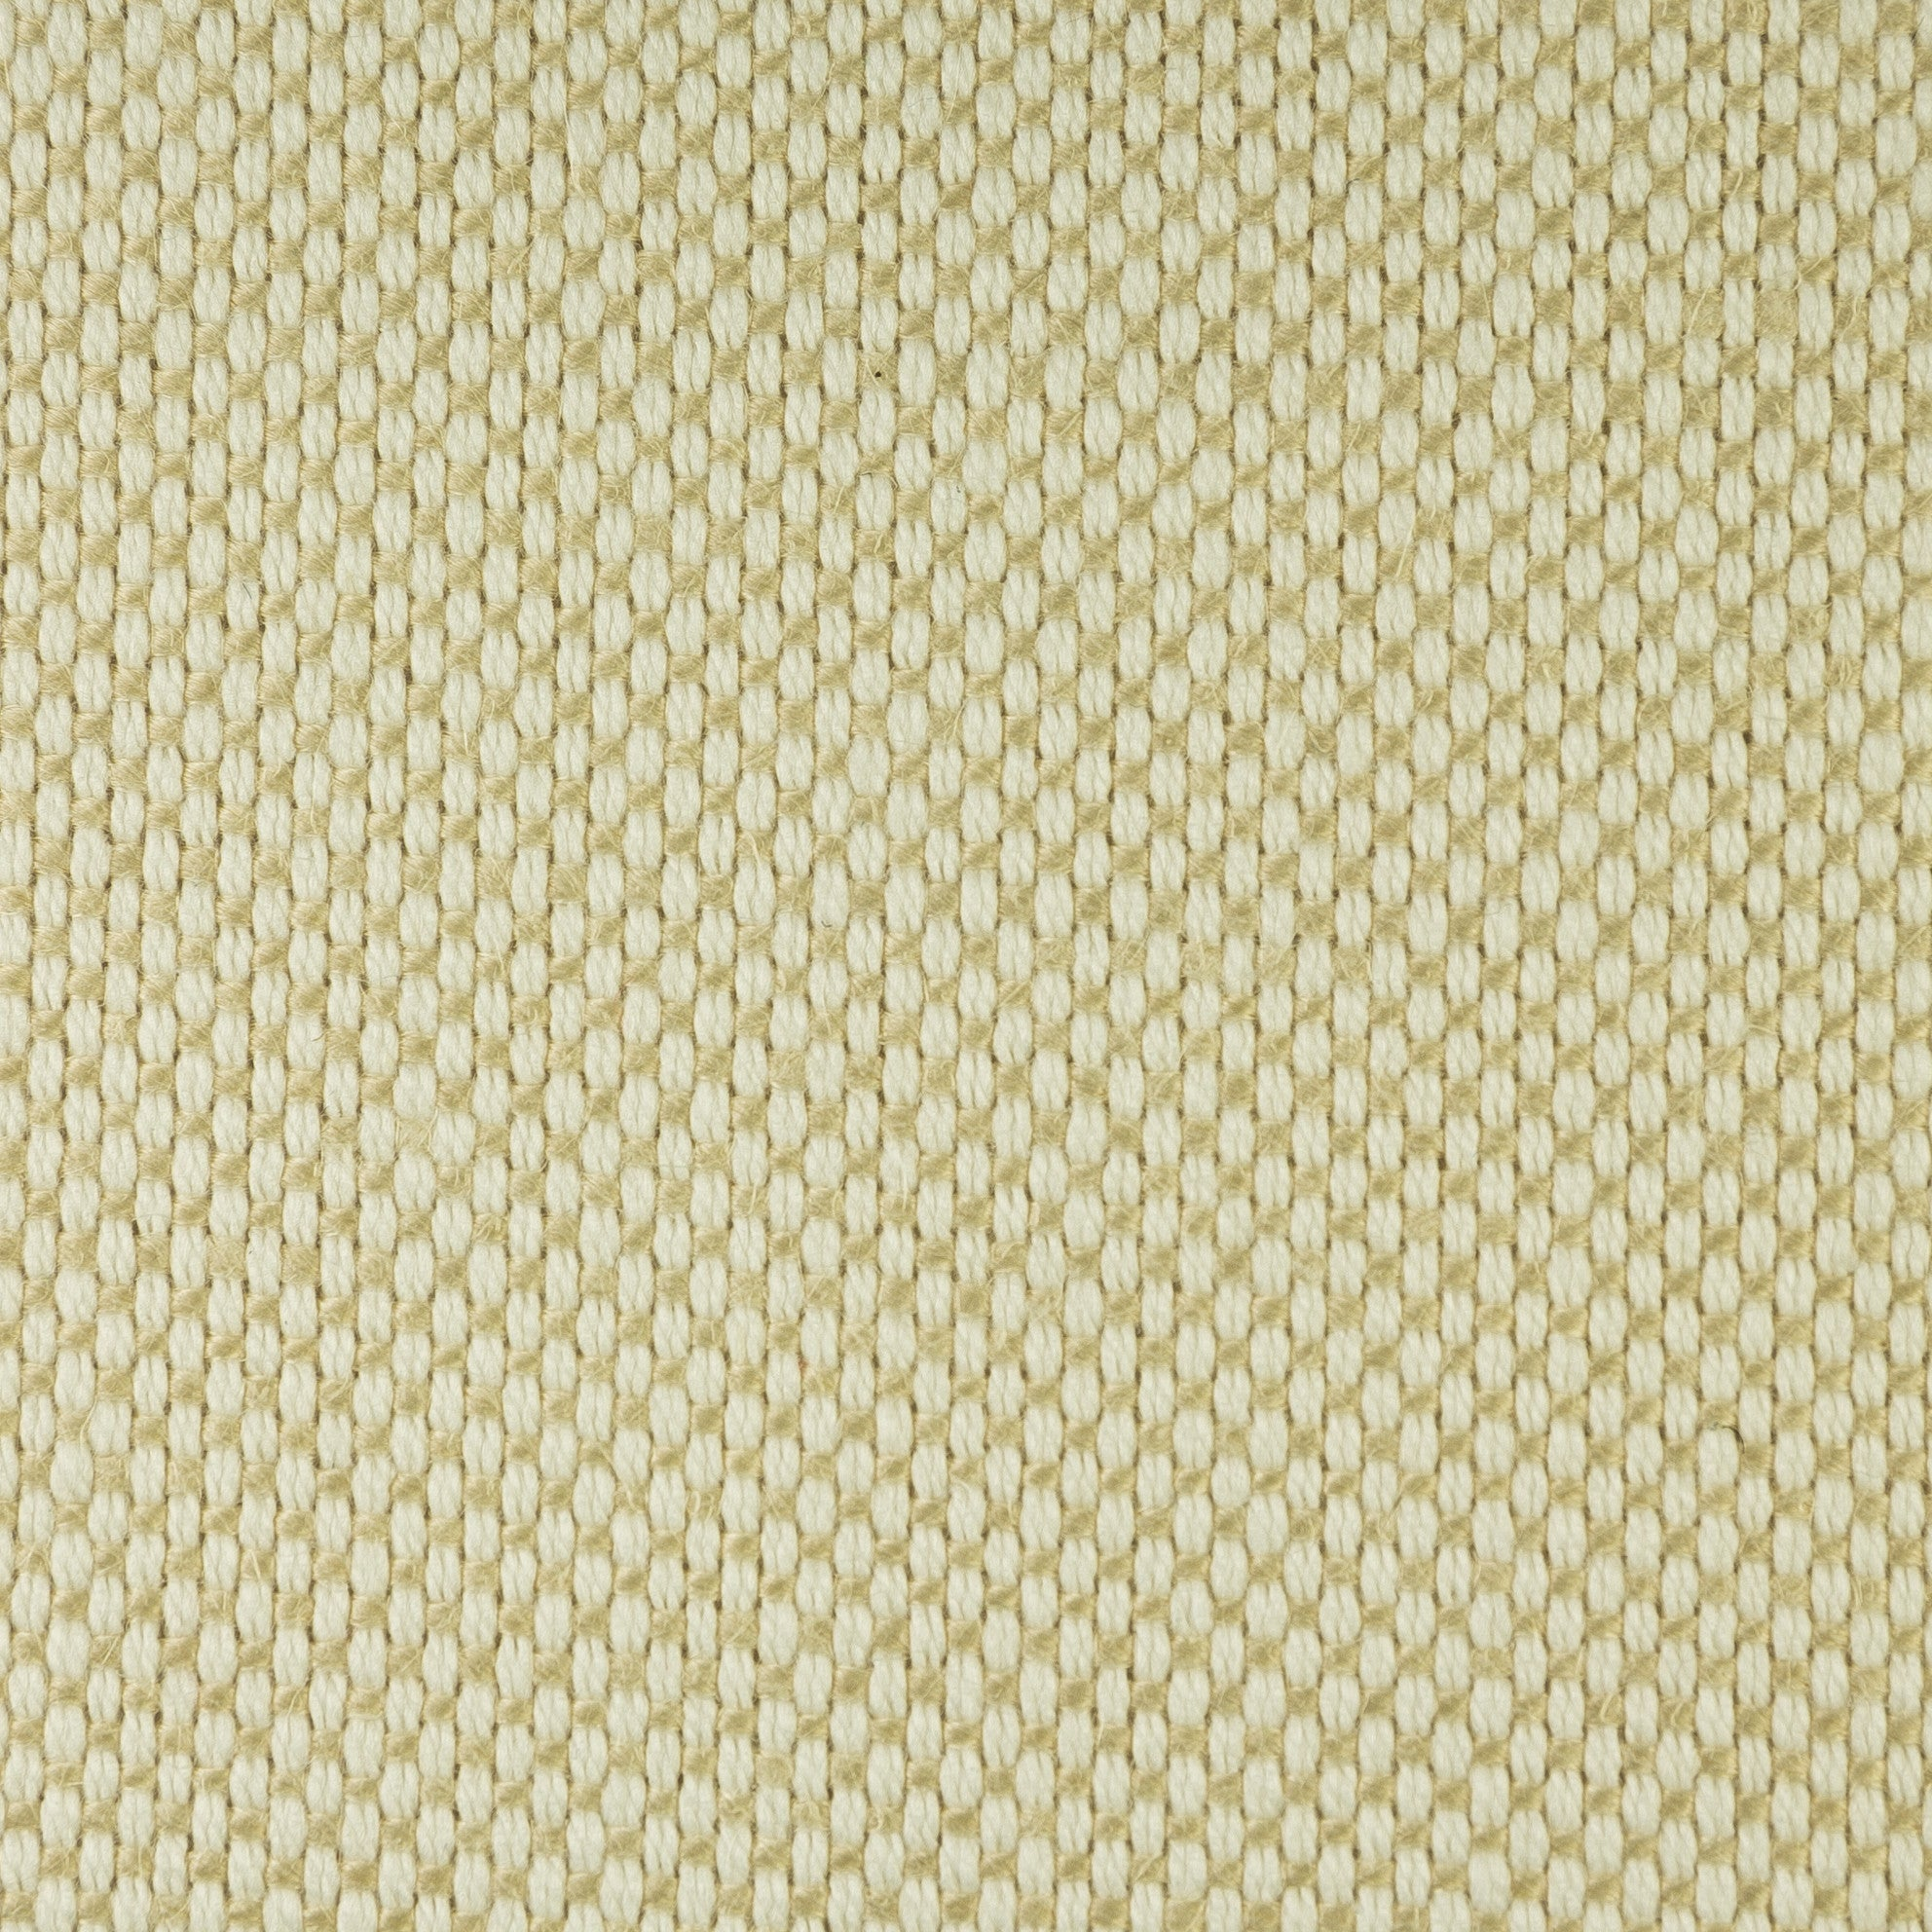 Woven Plain Fabric - Fowey 30/021 Cool Coconut